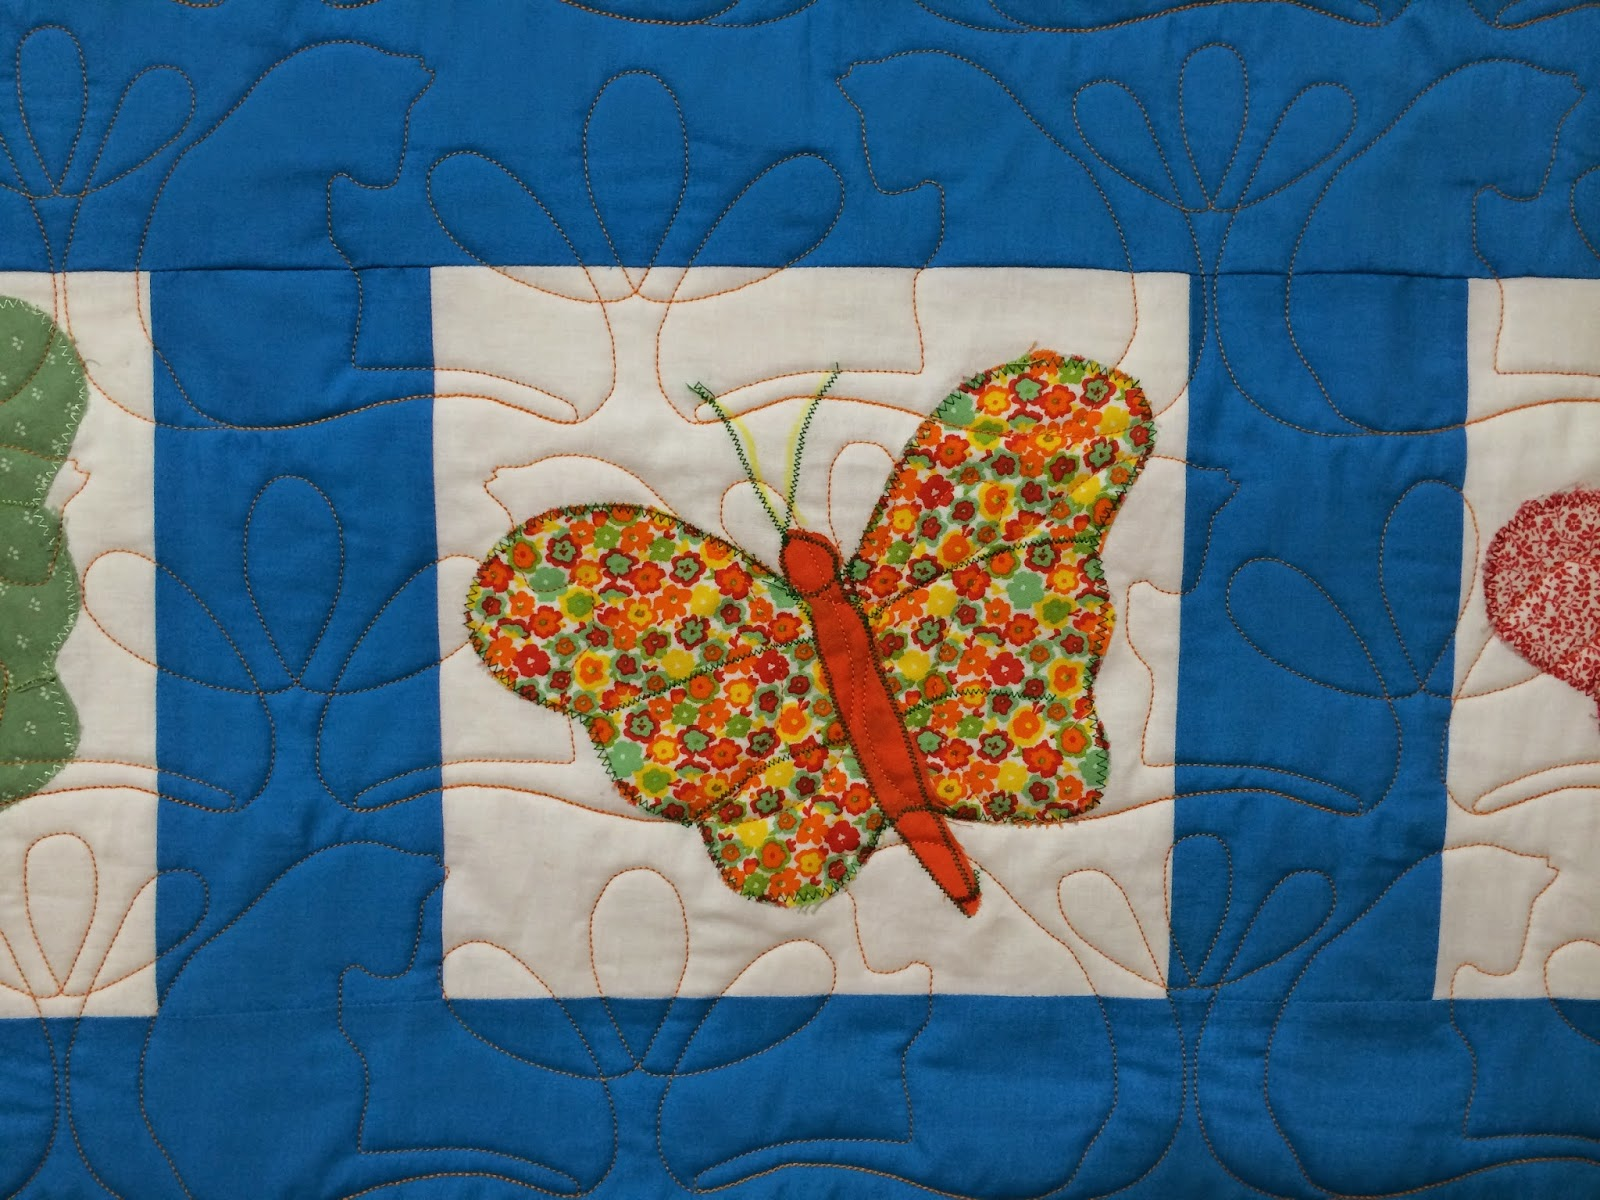 Sharon Lowther's Applique Butterfly Quilt